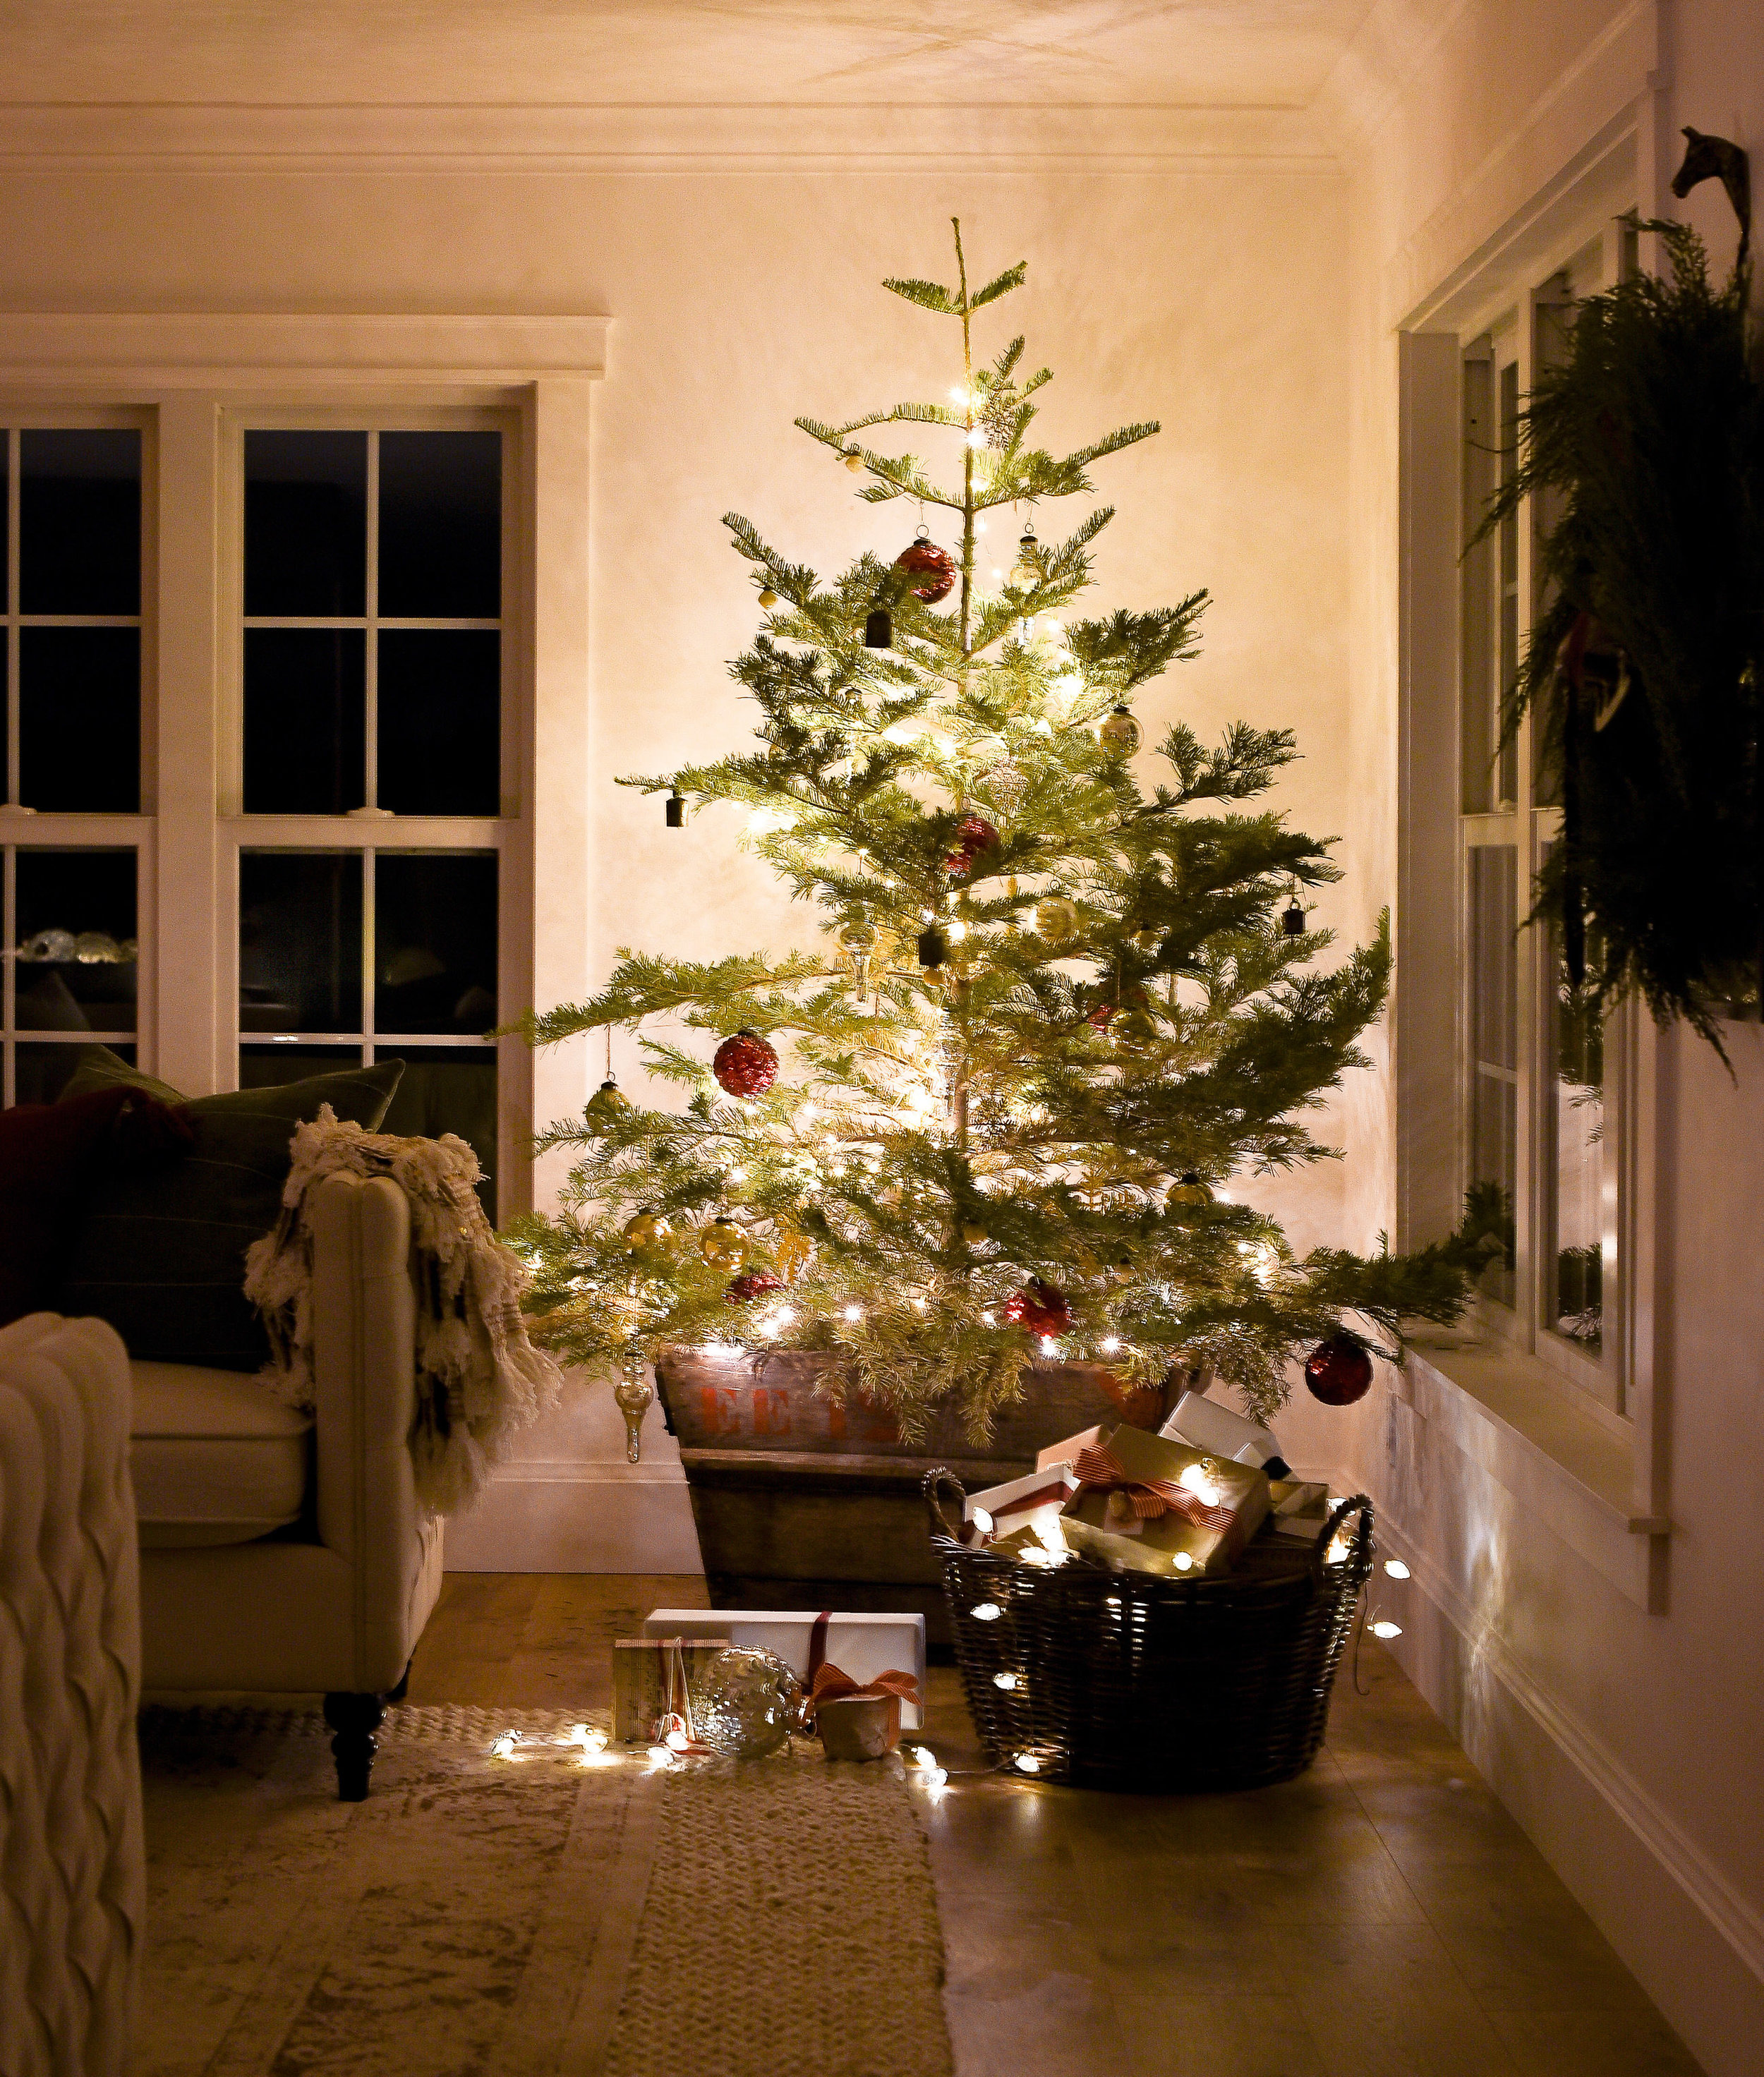 You will love seeing these homes all lit up at Christmas time with twinkly lights! boxwoodavenue.com